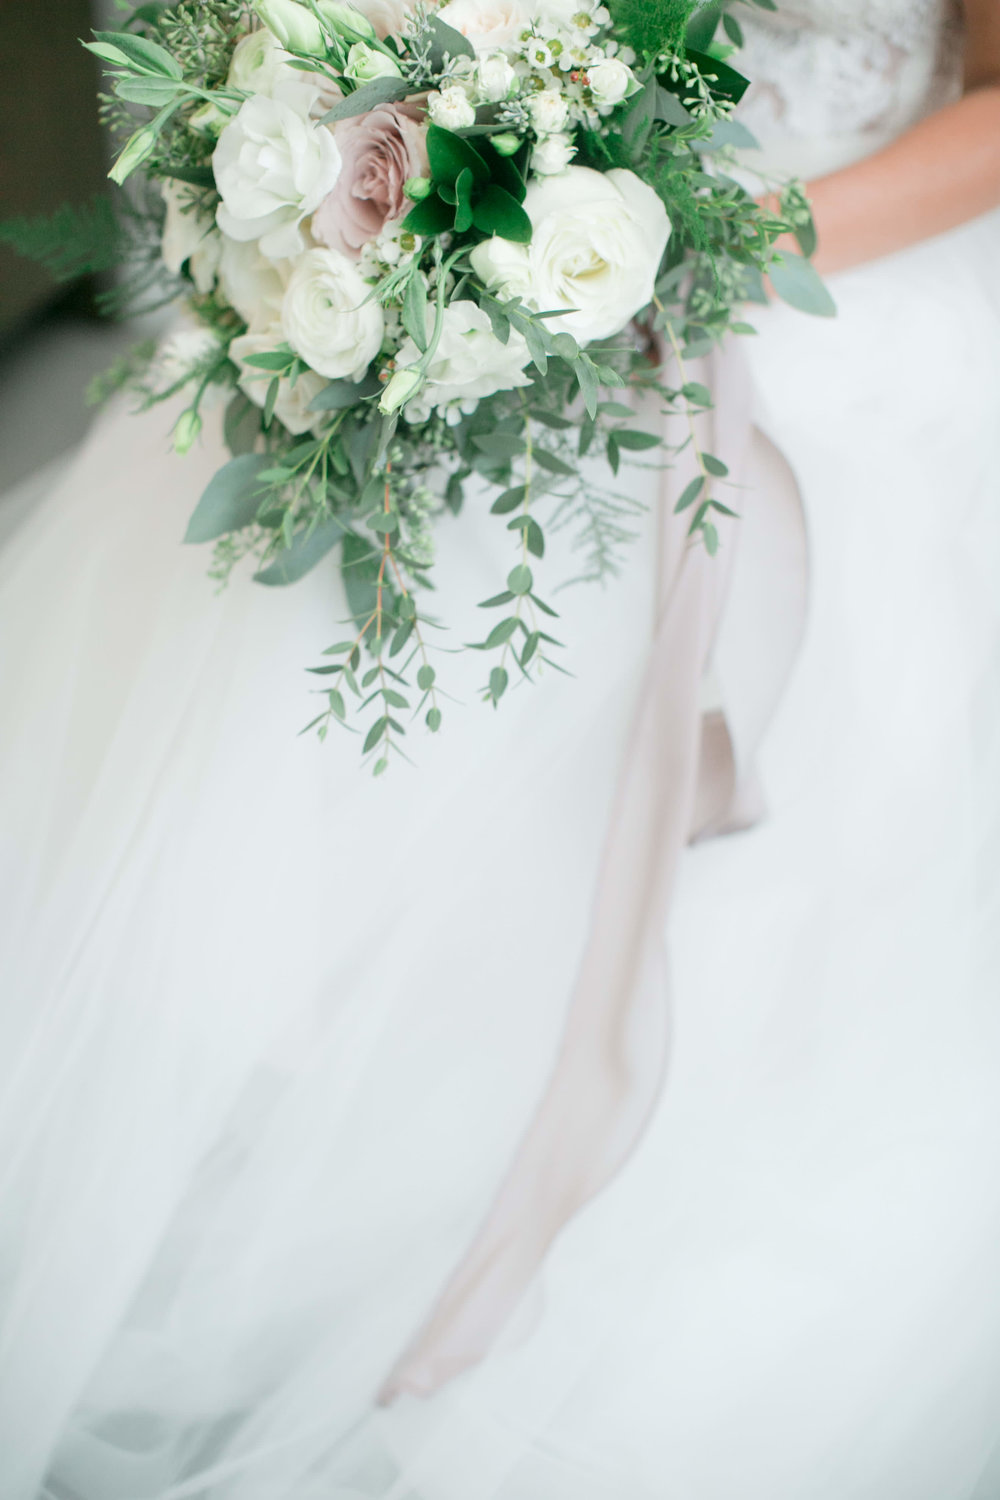 Kelsey___Daniel___High_Res_Finals___Daniel_Ricci_Weddings_108.jpg